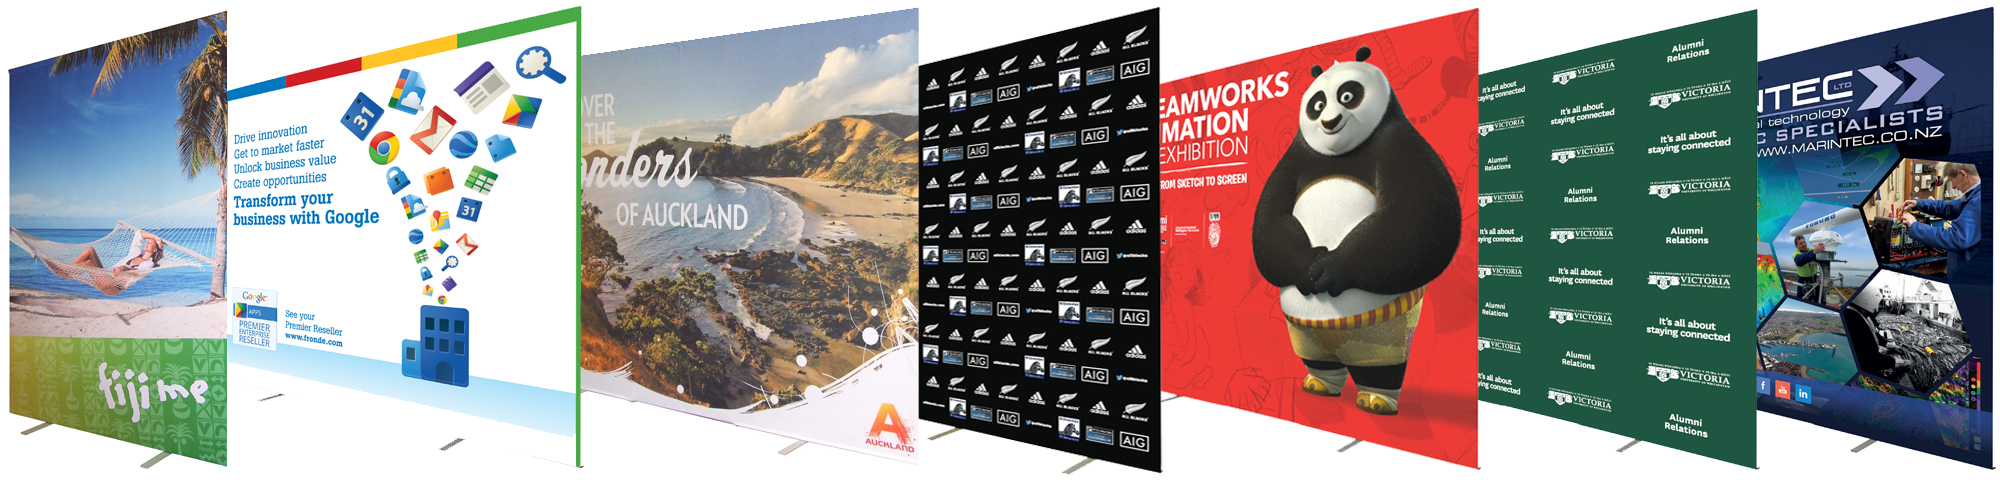 banner printing auckland large format print nz display